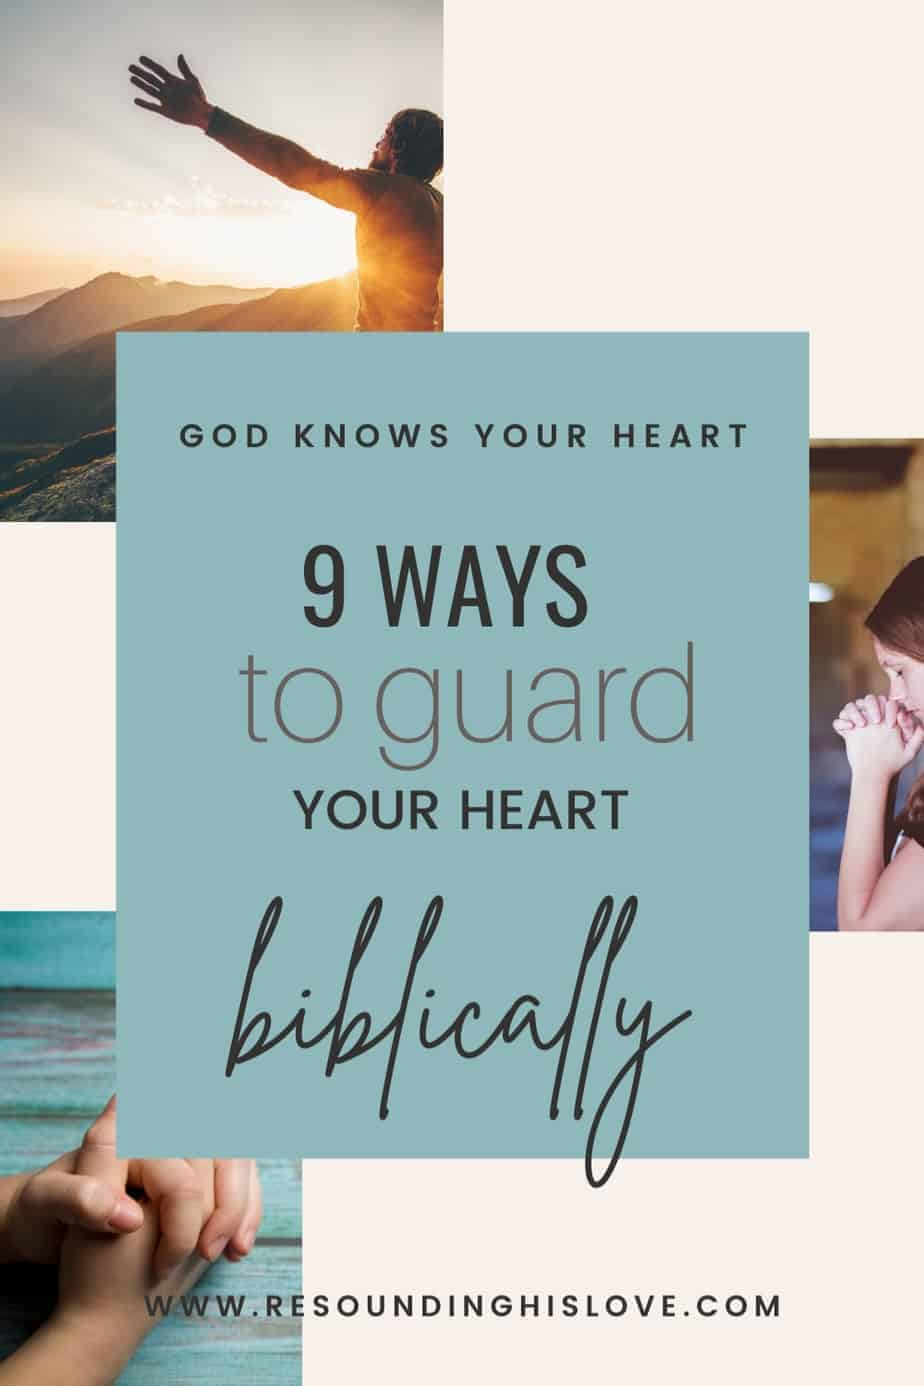 hands folded laying on a blue table, a man with arms raised sitting on a mountain, a young woman sitting in a field with hands crossed in prayer with text9 Ways to Guard Your Heart Biblically